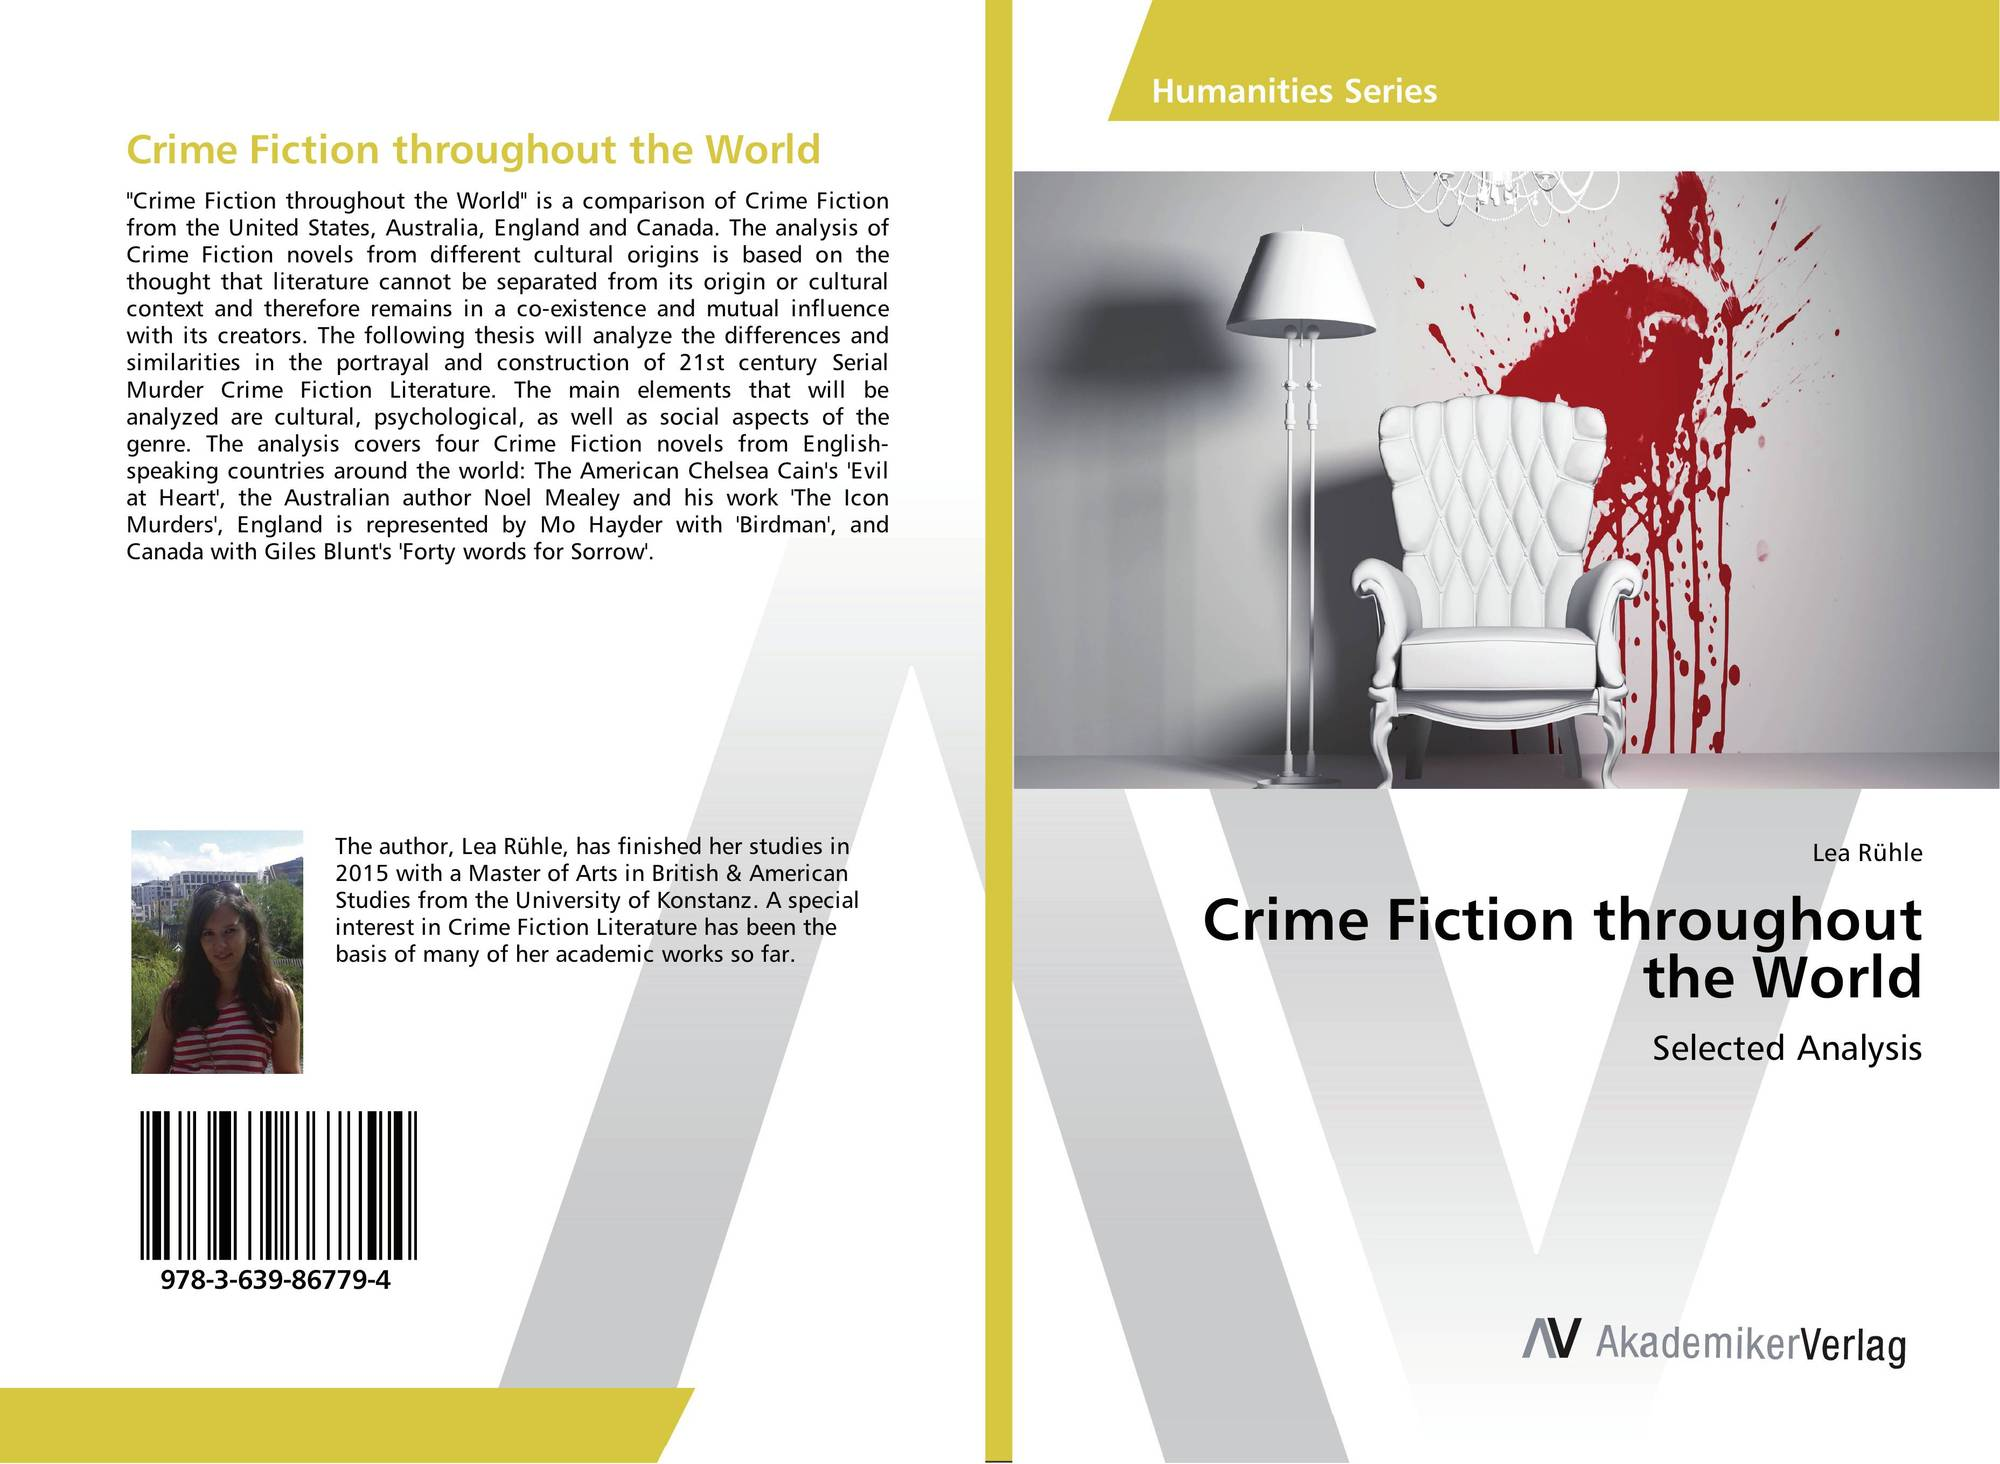 an analysis of crime fiction Browse crime fiction news, research and analysis from the conversation.